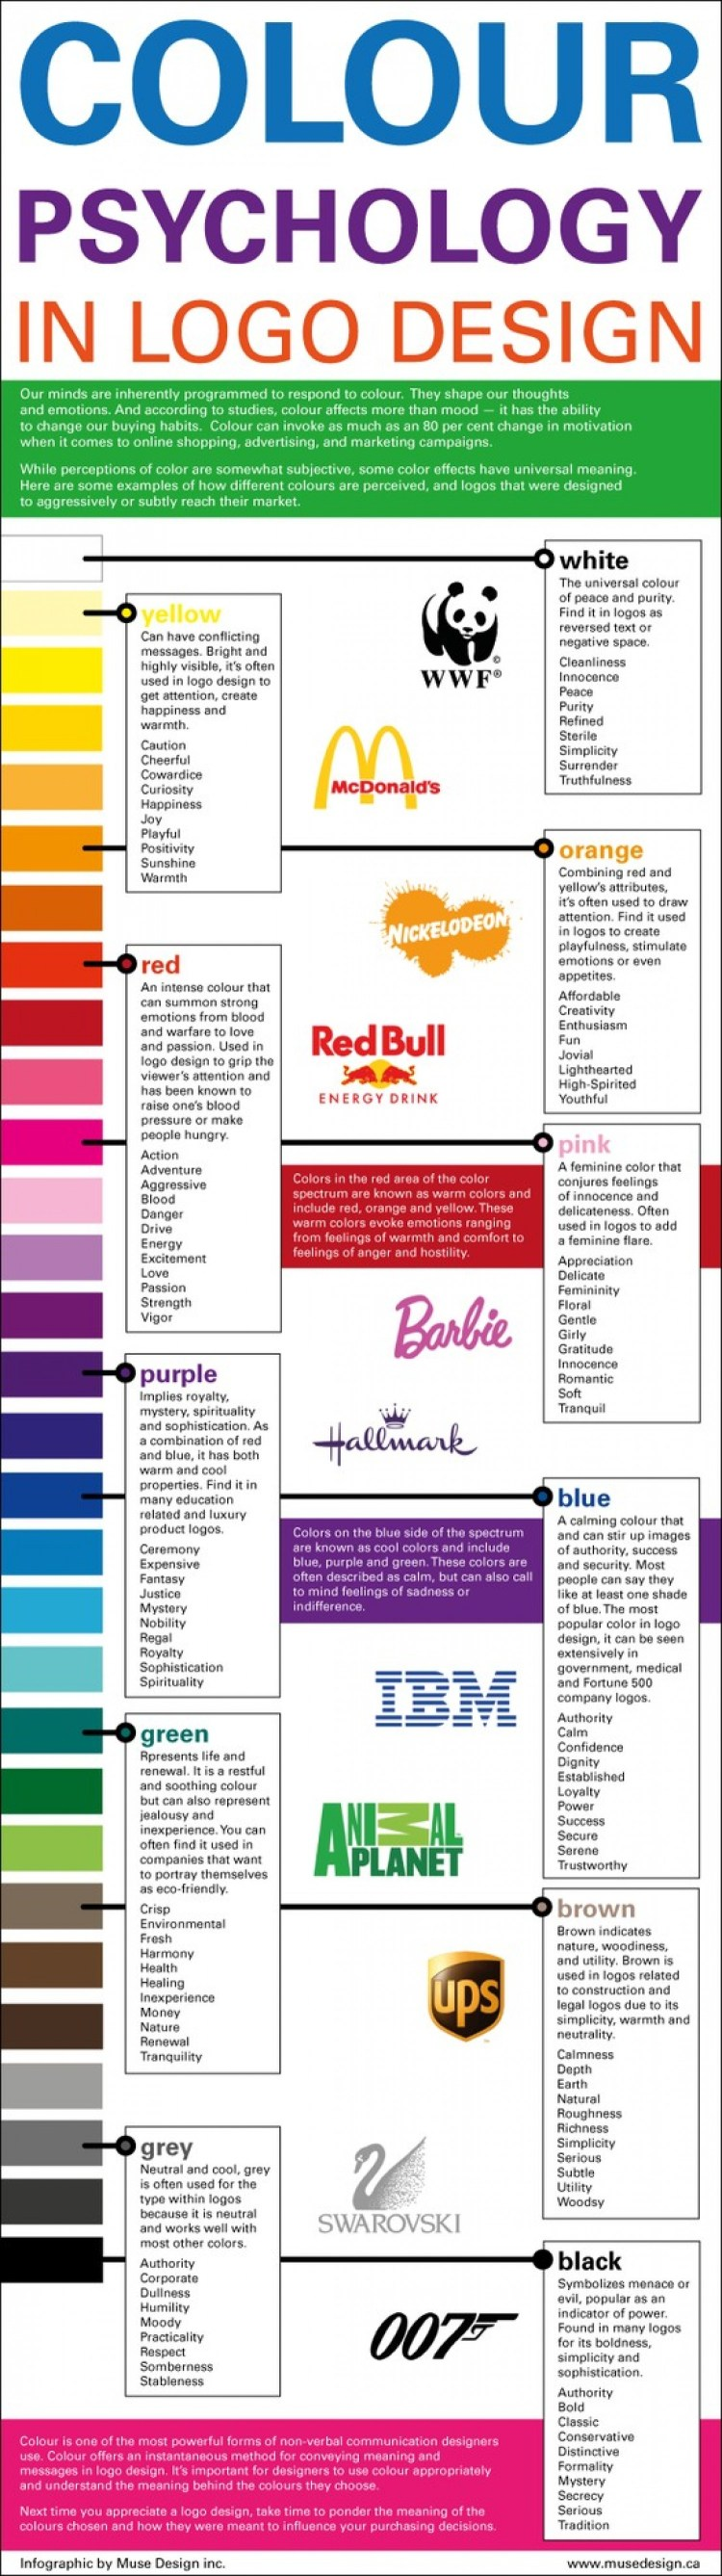 ColorPsychology_LogoDesign_01